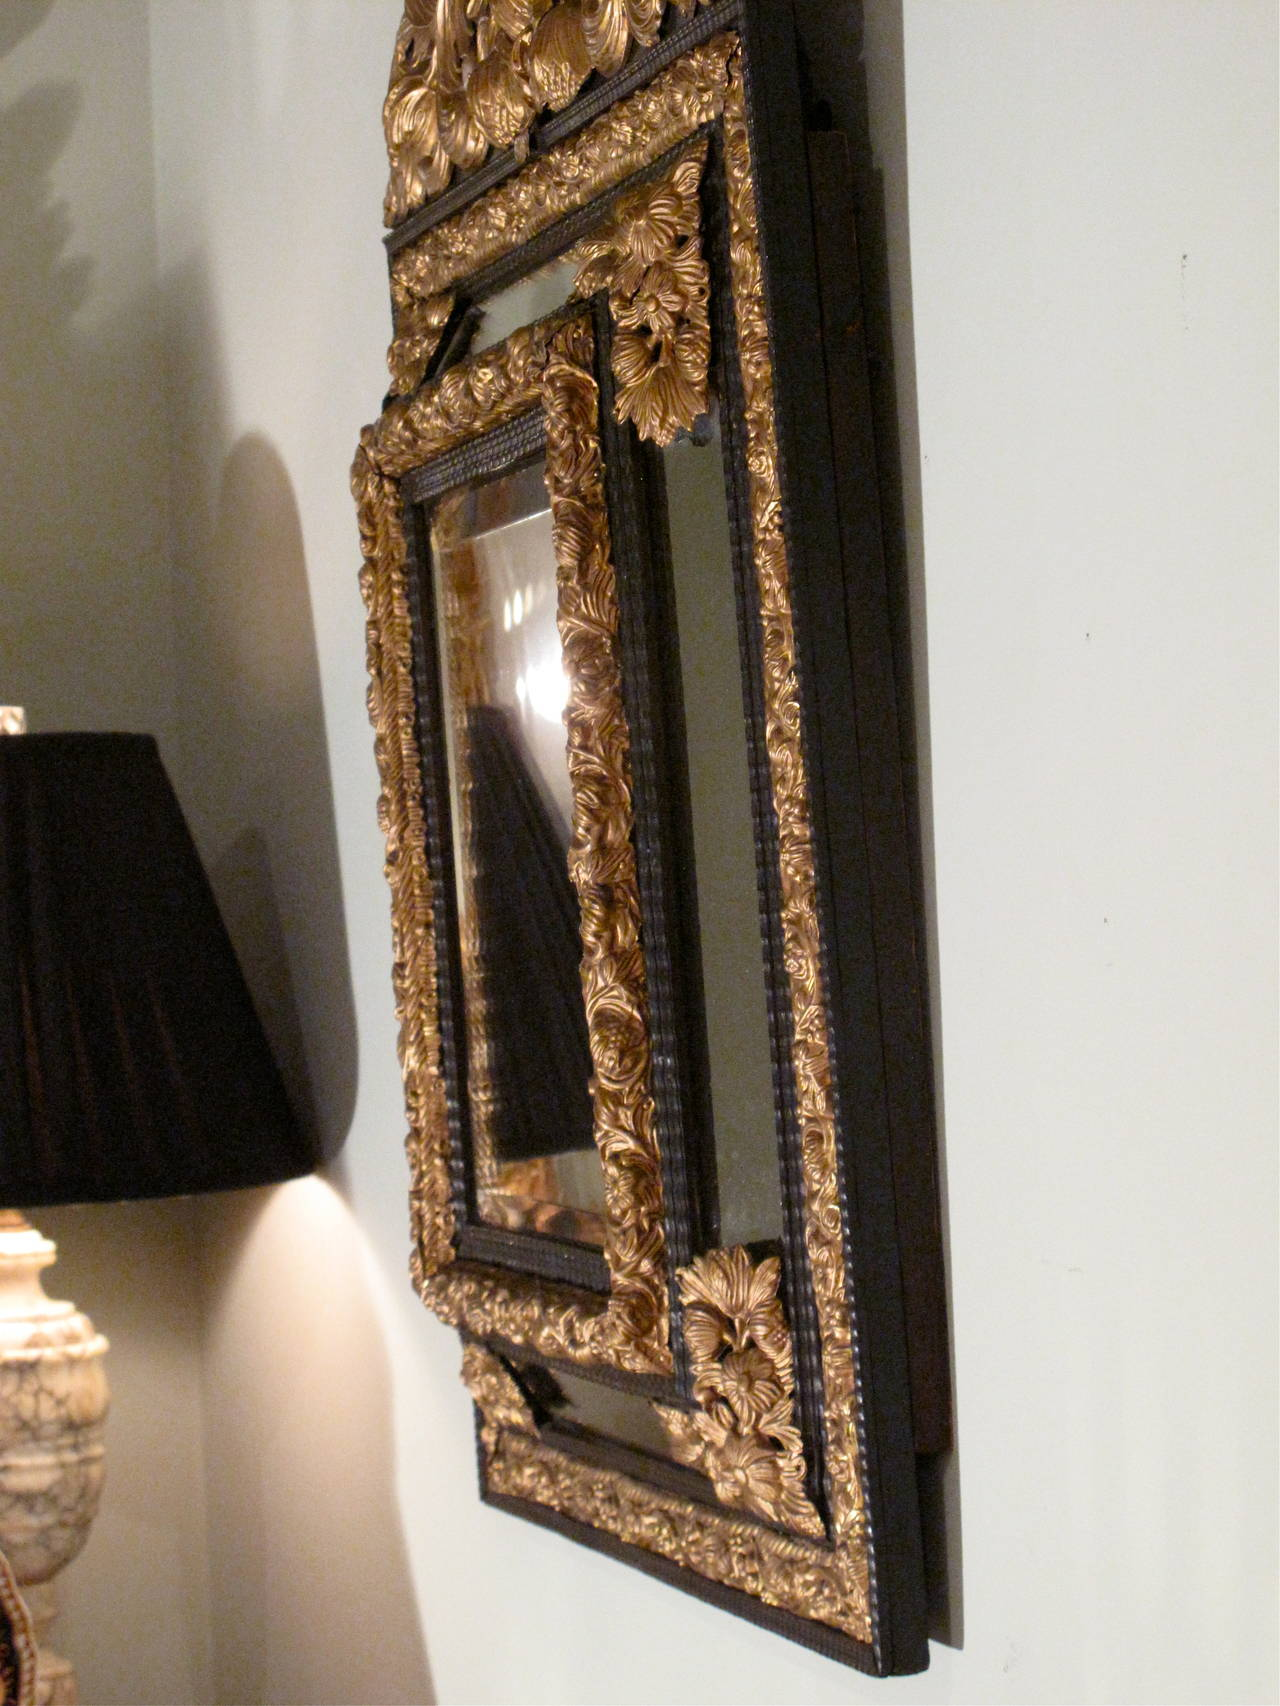 Flemish baroque style cushion mirror at 1stdibs for Baroque style wall mirror